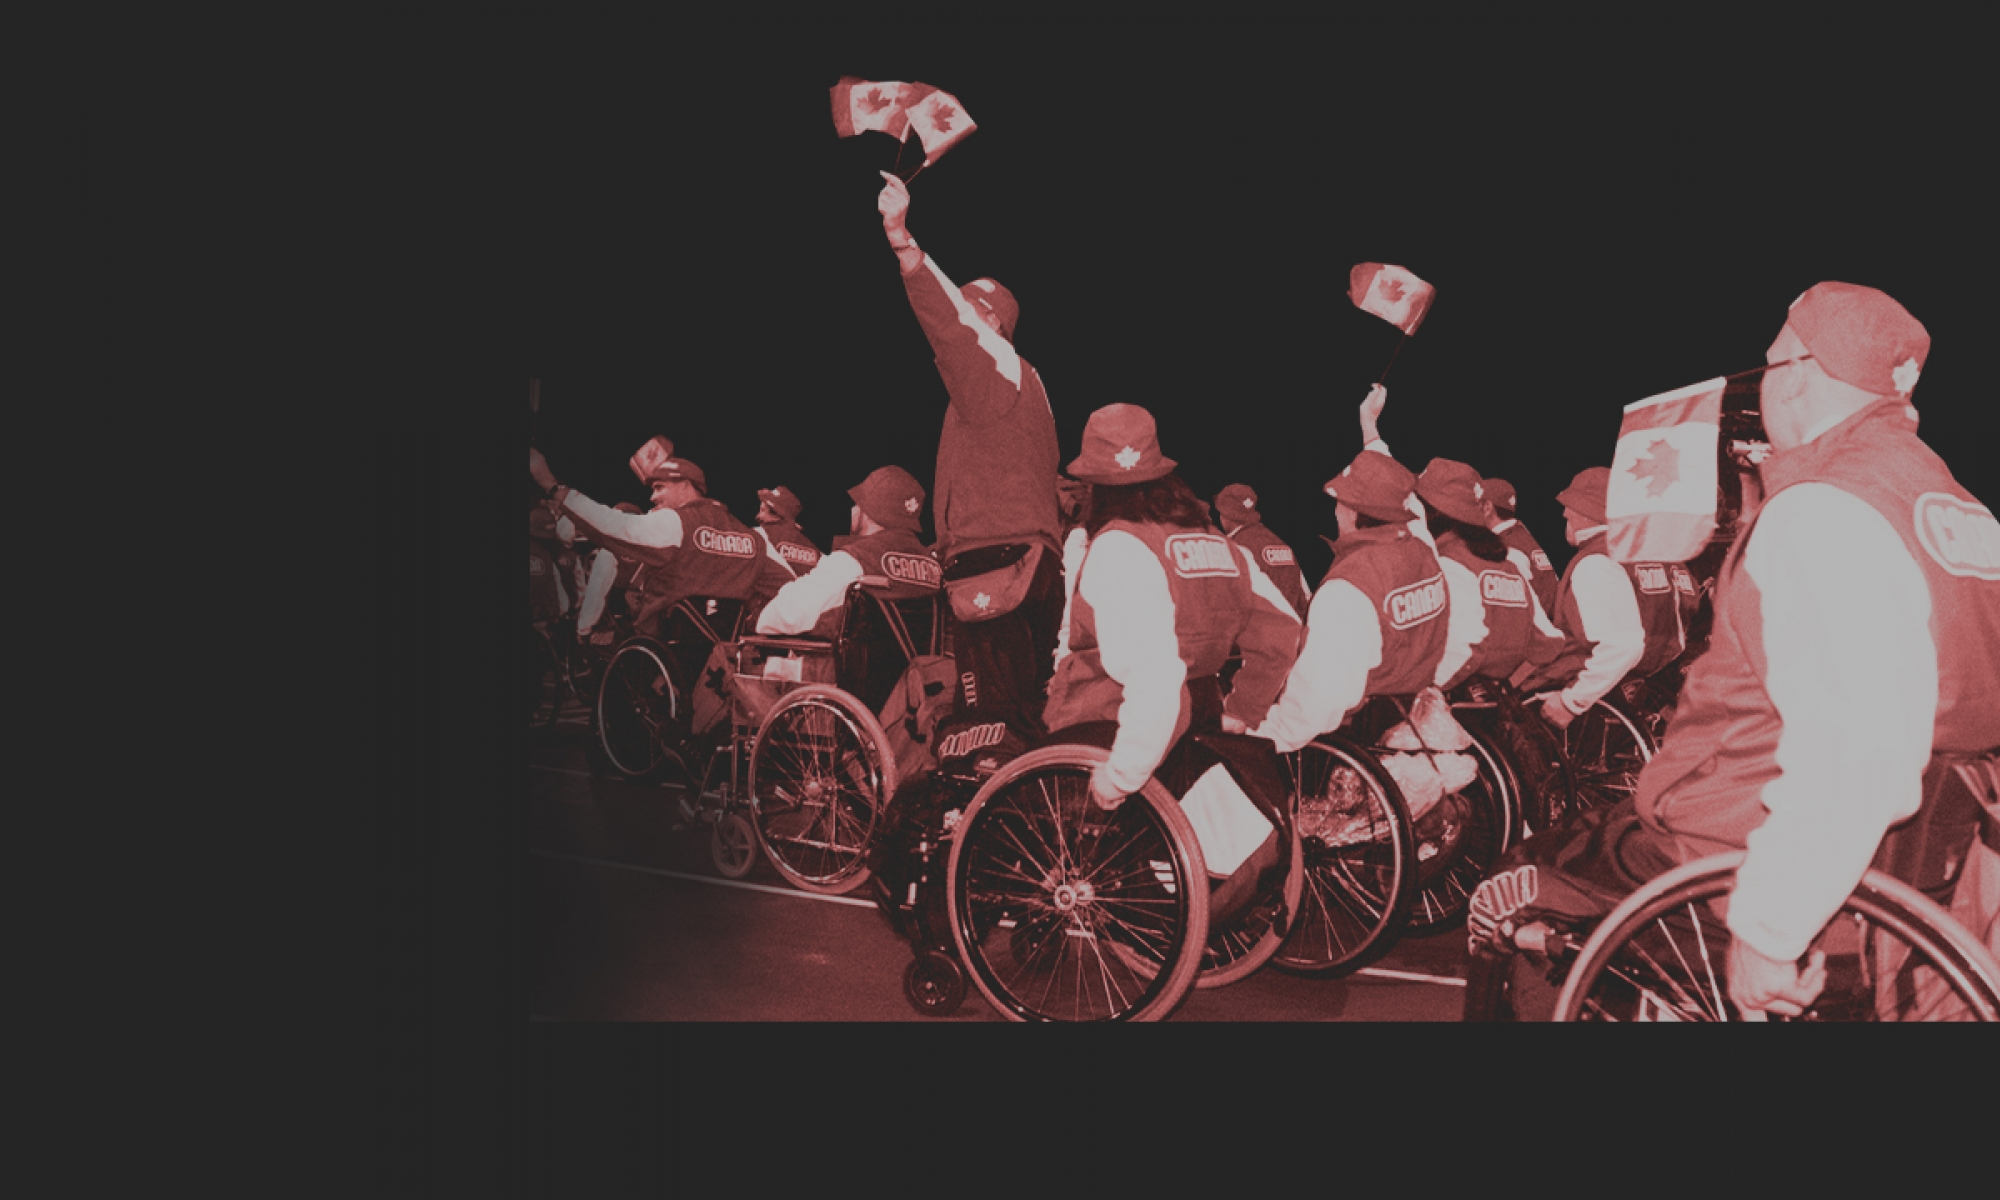 Sydney 2000 Paralympic Games opening ceremony Team Canada photo